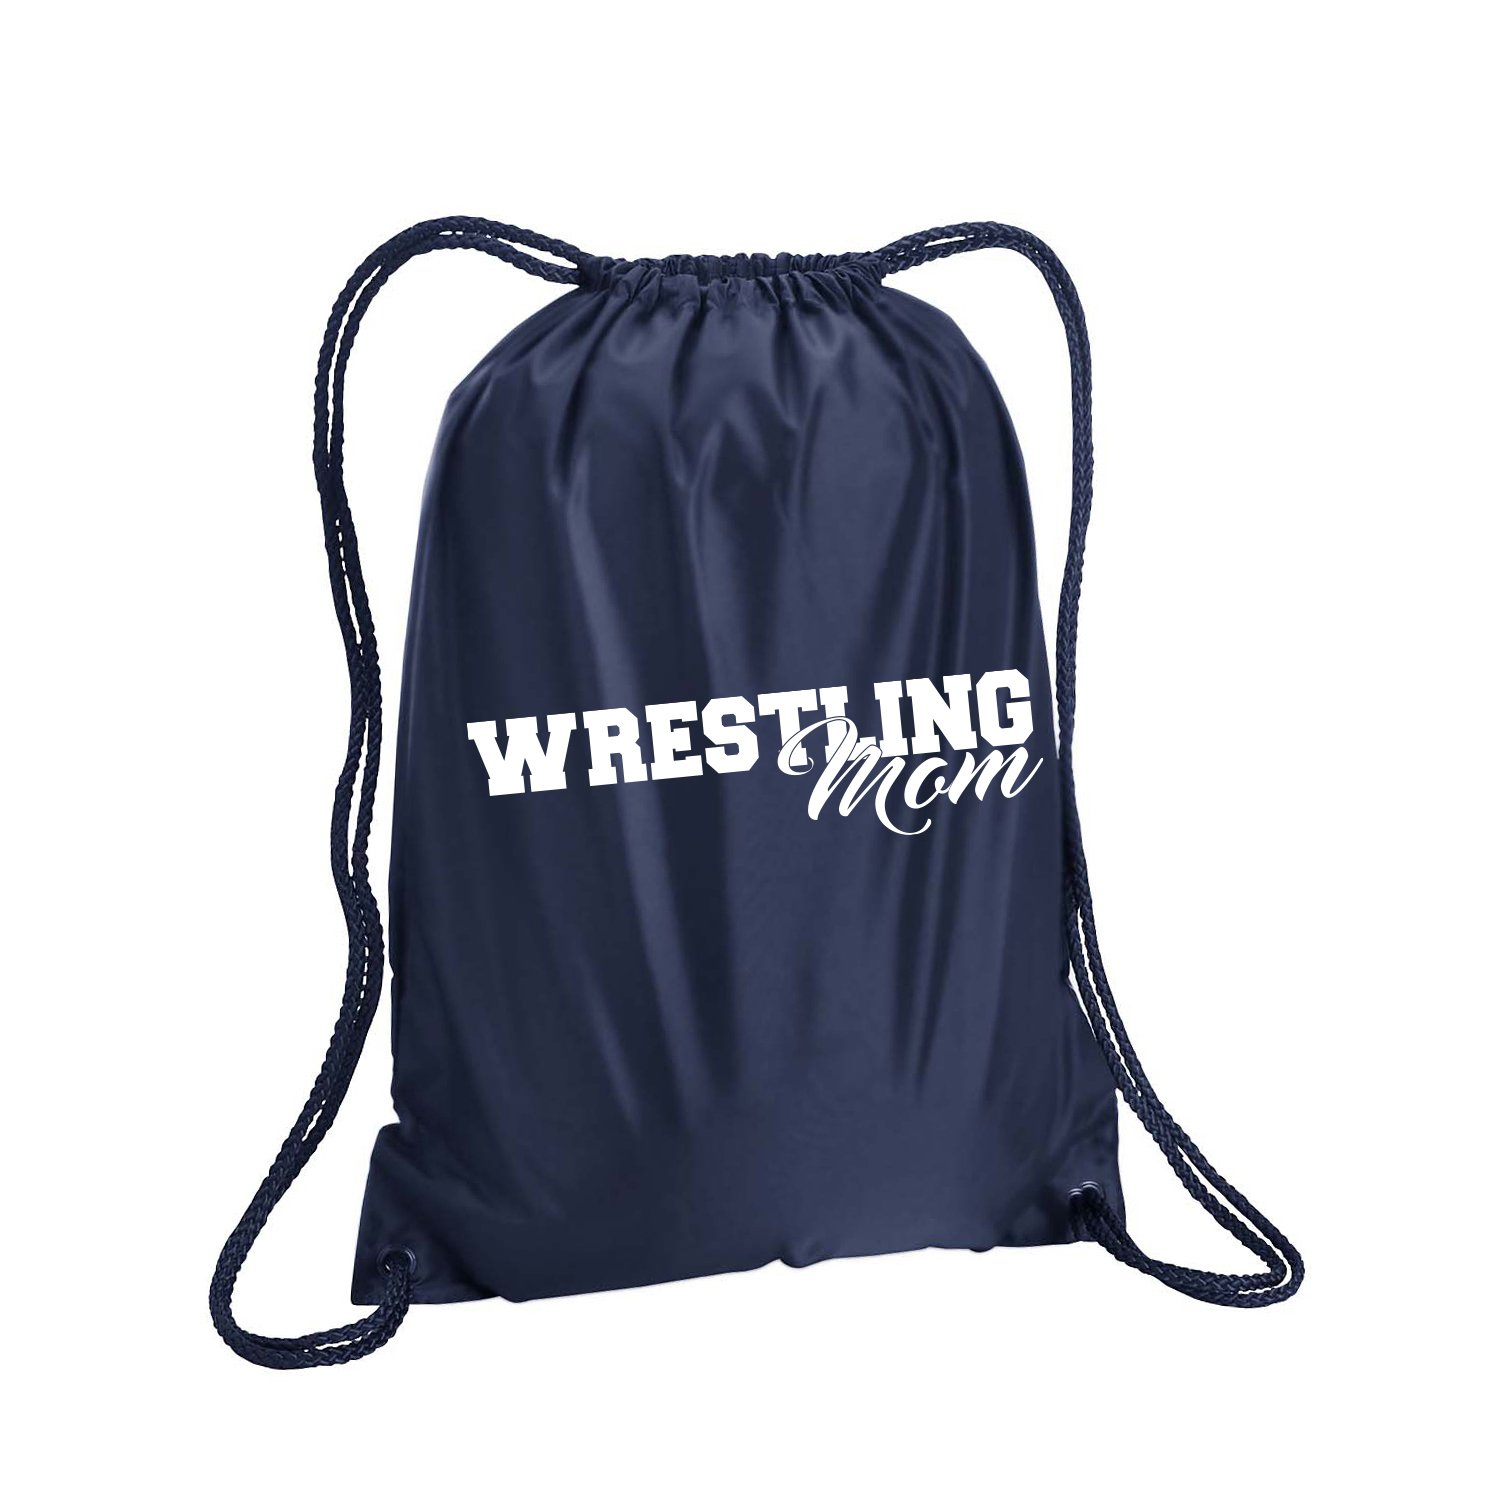 Wrestling Mom Cinch Pack in Navy - Small 14x18 by ZeroGravitee